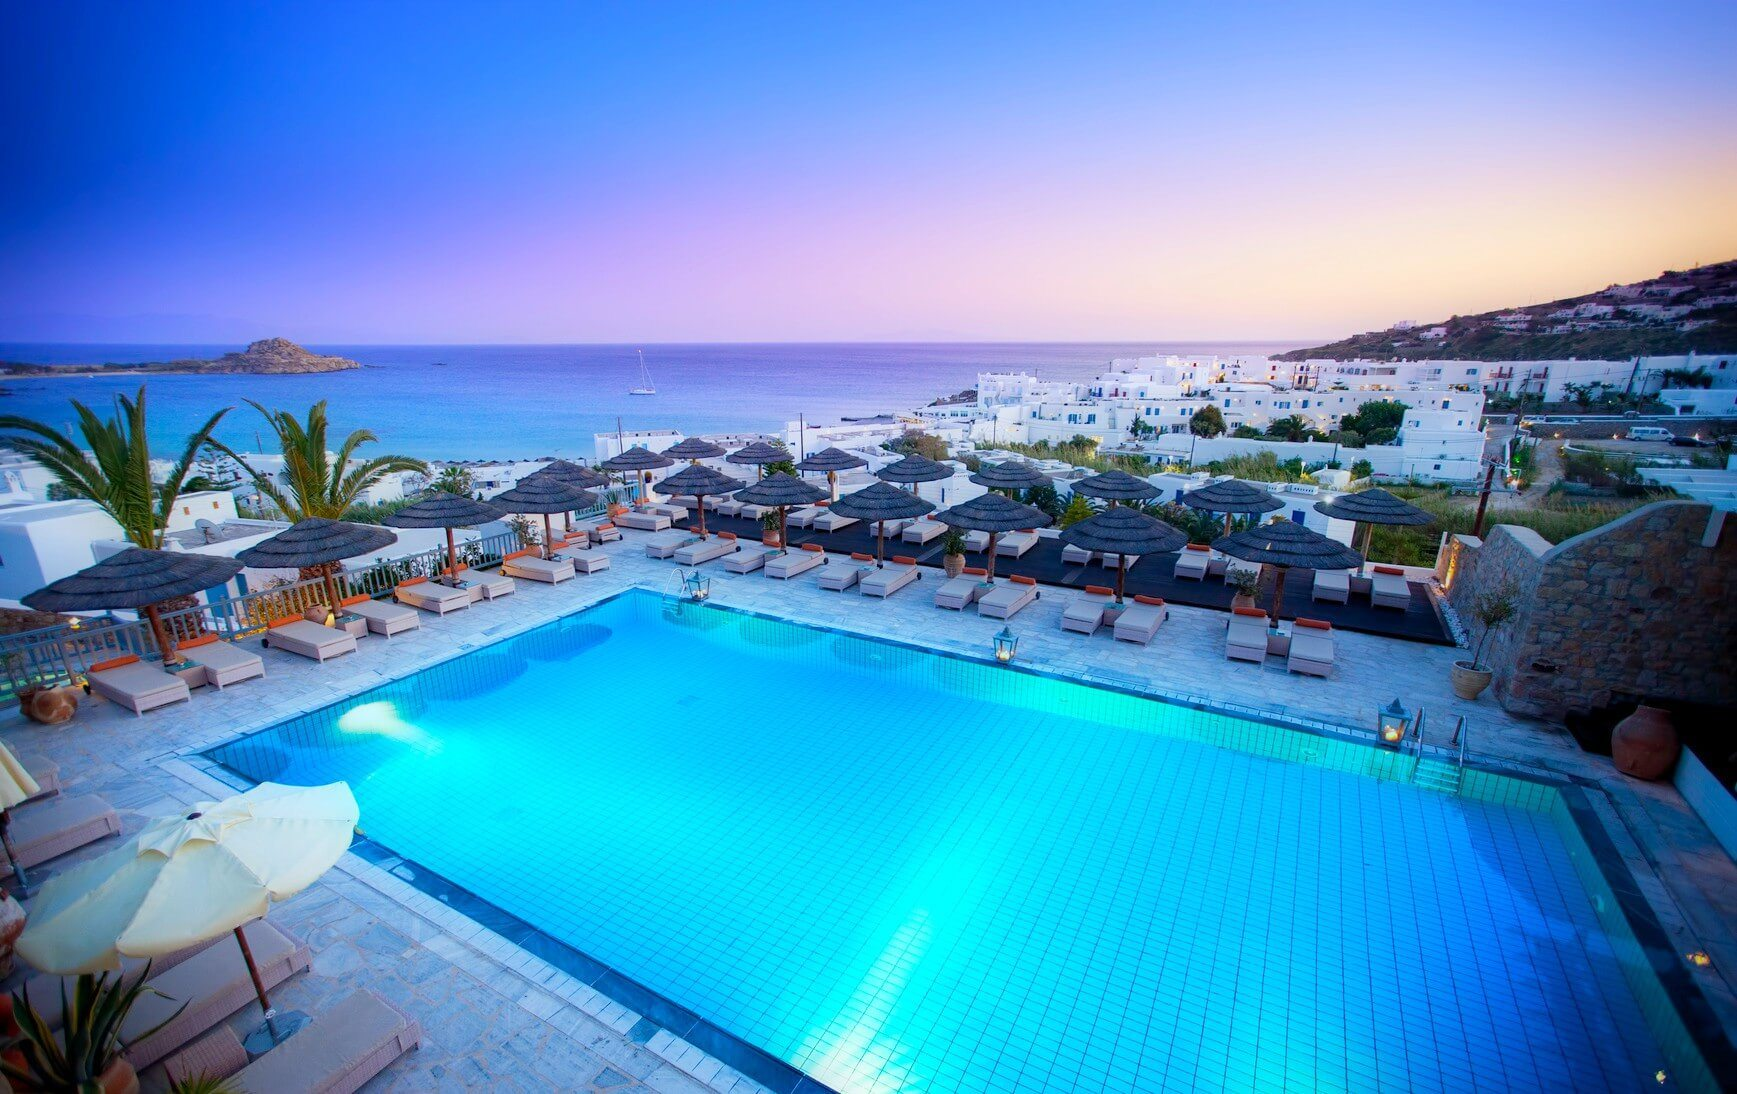 The 10 best luxury hotels in mykonos for every occasion for Top luxury hotels